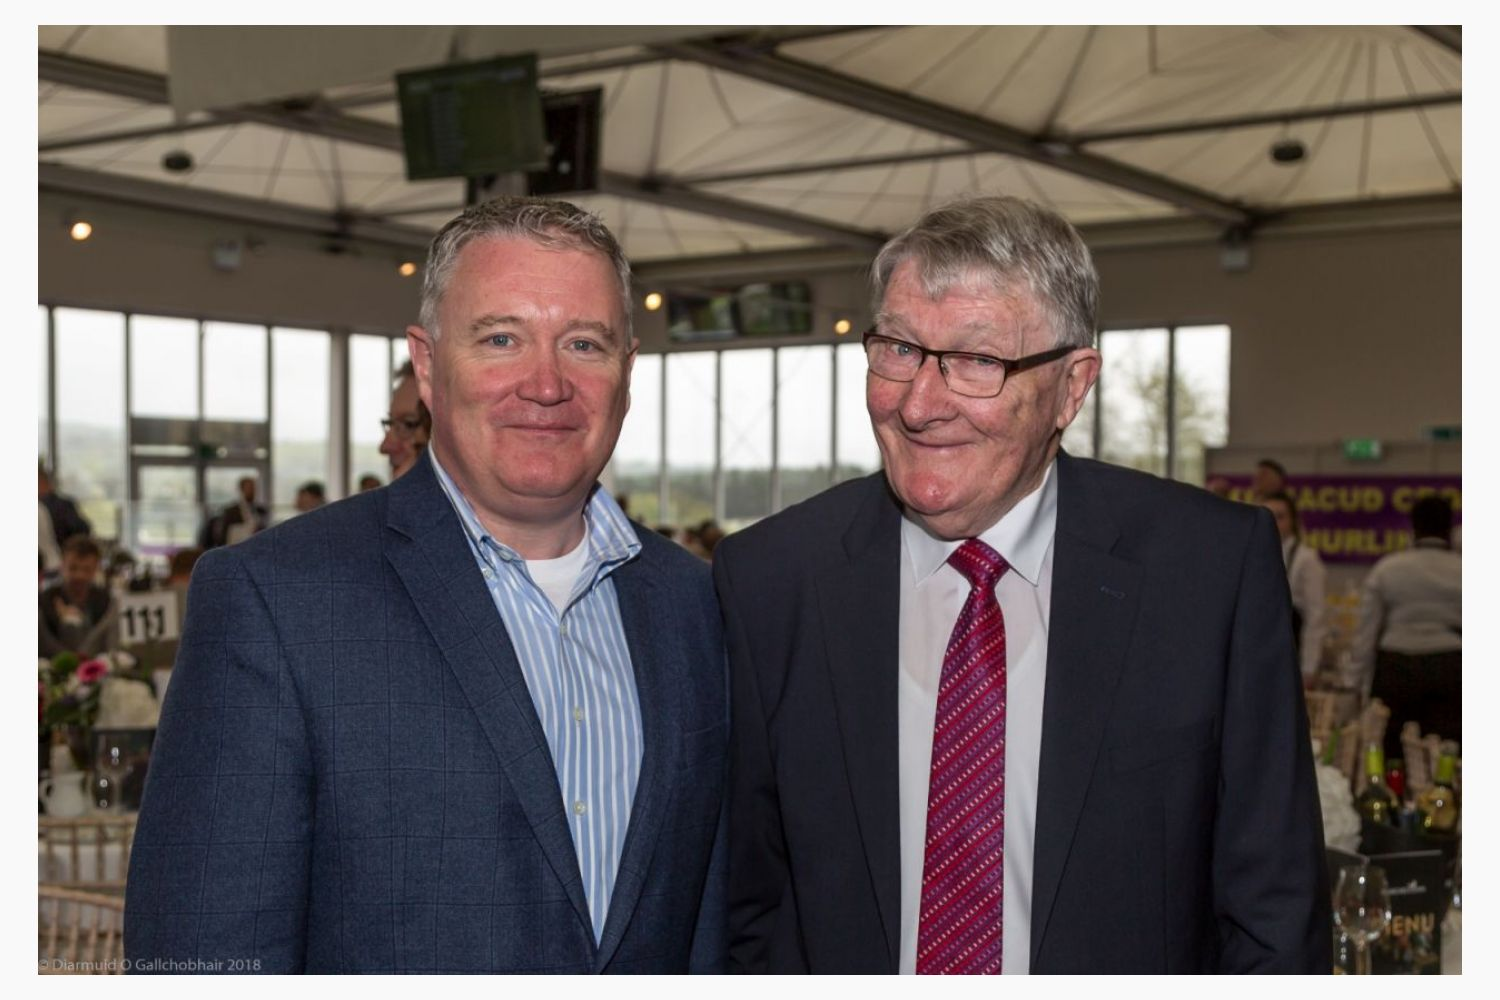 Punchestown 2018 Corporate Raceday - Report Out with Photos